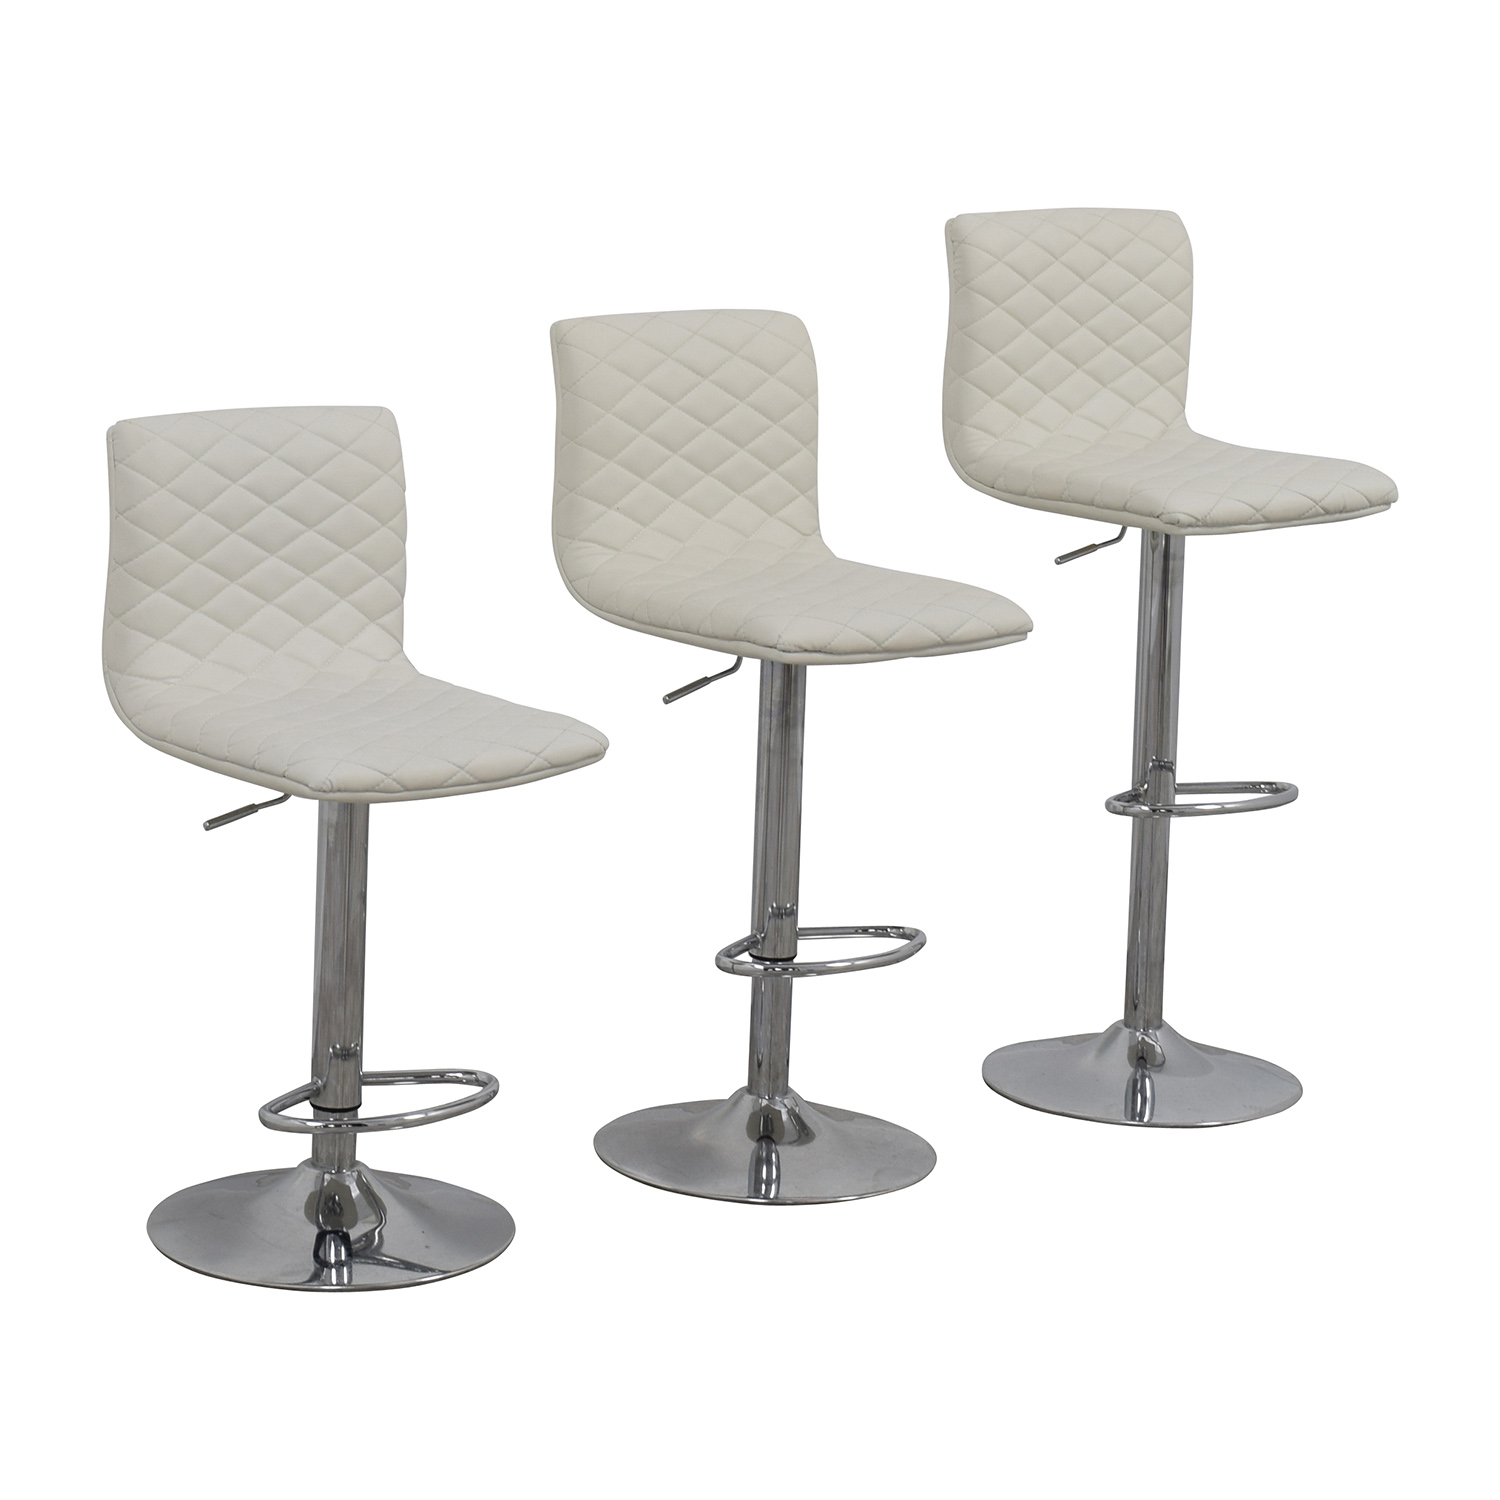 45 Off White Quilted Bar Stool Chairs Chairs